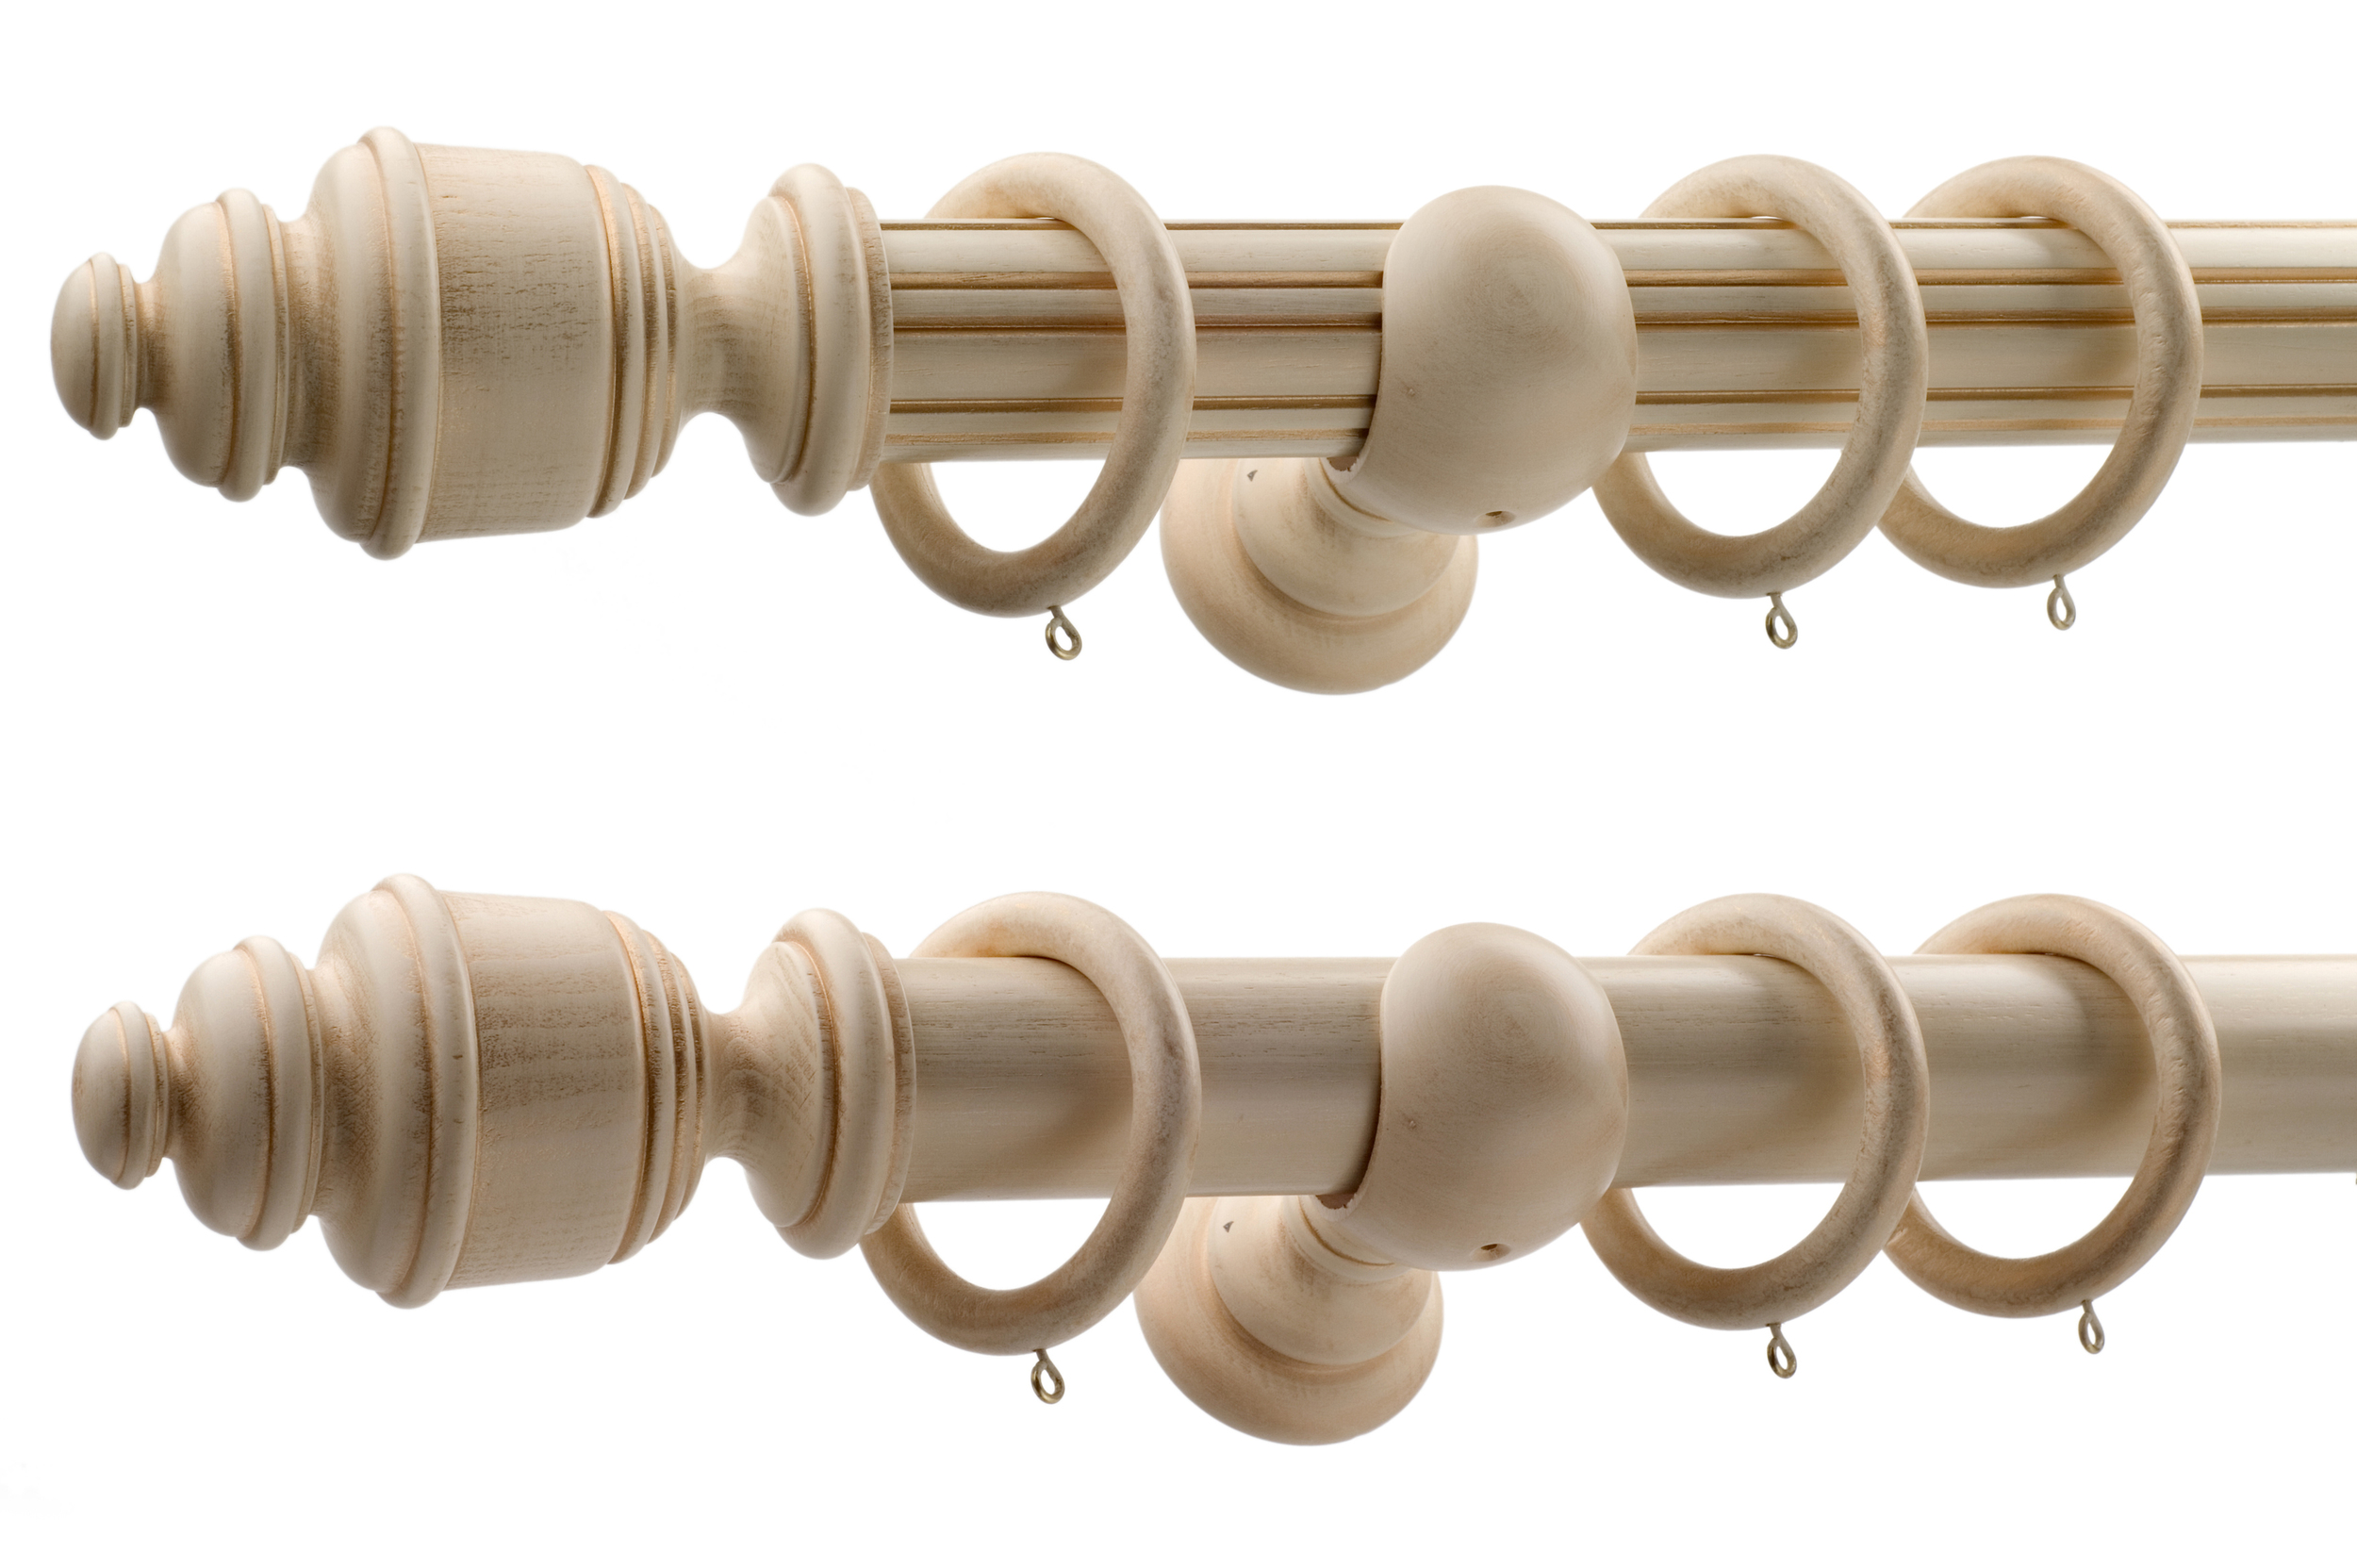 LeRoyale king ACream Smooth Reeded.jpg